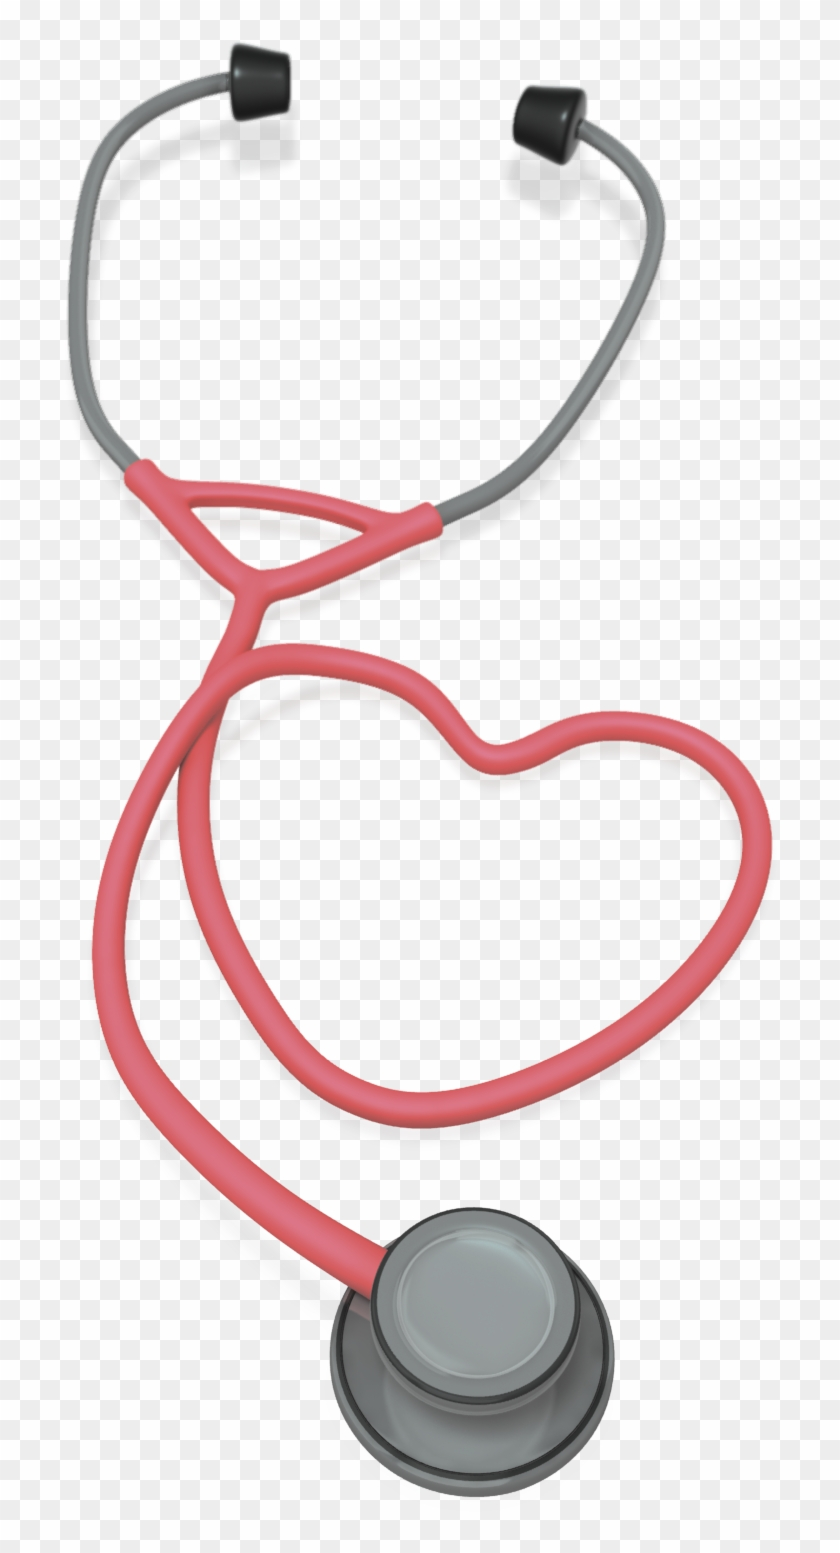 medium resolution of free pictures heart stethoscope clipart image stethoscope clipart